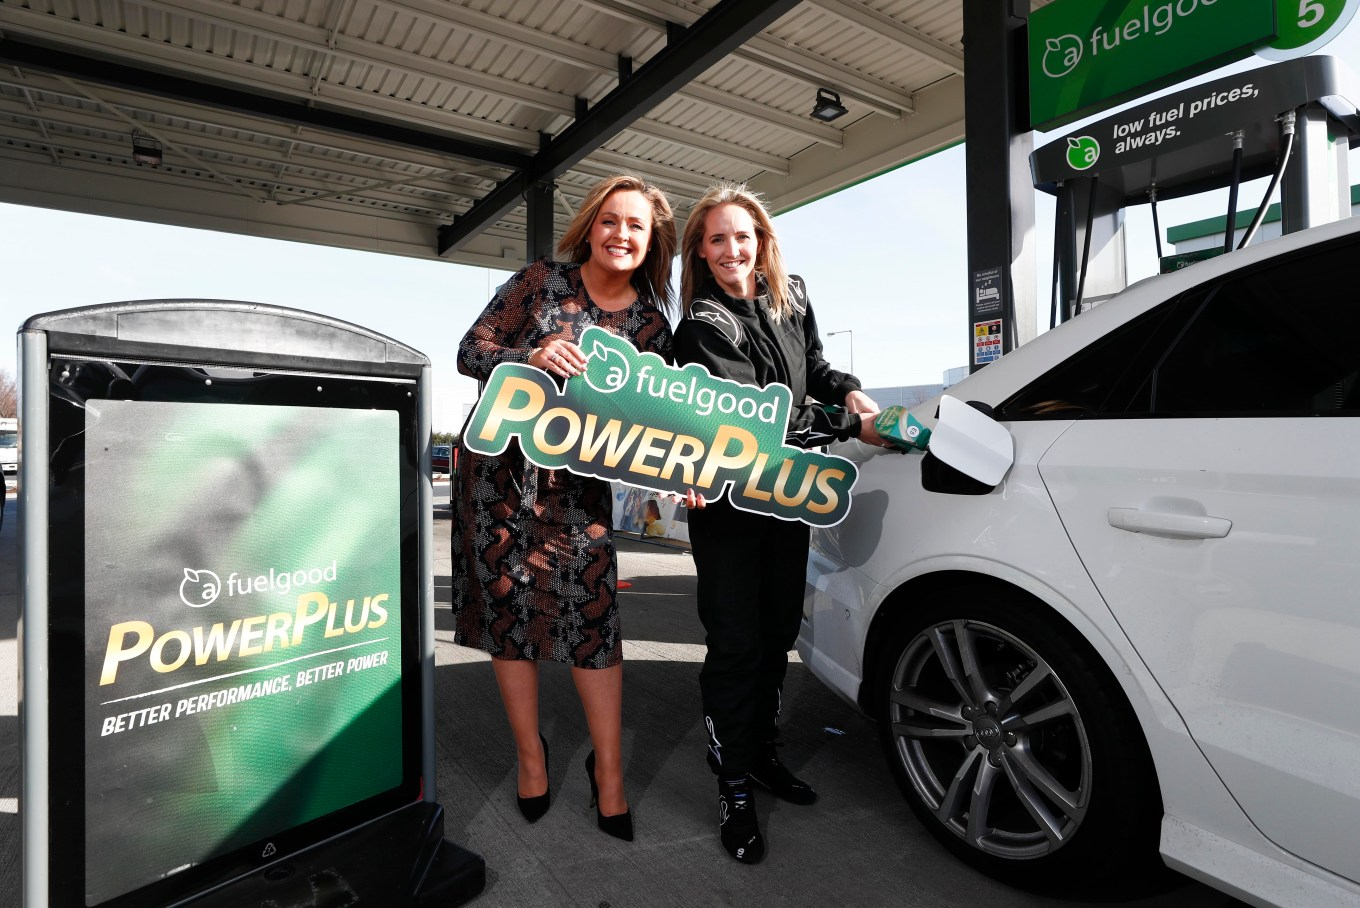 Nicci Daly, motorsport engineer, Irish international hockey player and World Cup Silver Medalist 2018 fuels up for for better performance with Aisling Ryan, Head of Marketing, Applegreen at Applegreen M50 Services Junction 10, Ballymount for the launch of fuelgood PowerPlus, Applegreen's most advanced, premium fuel.